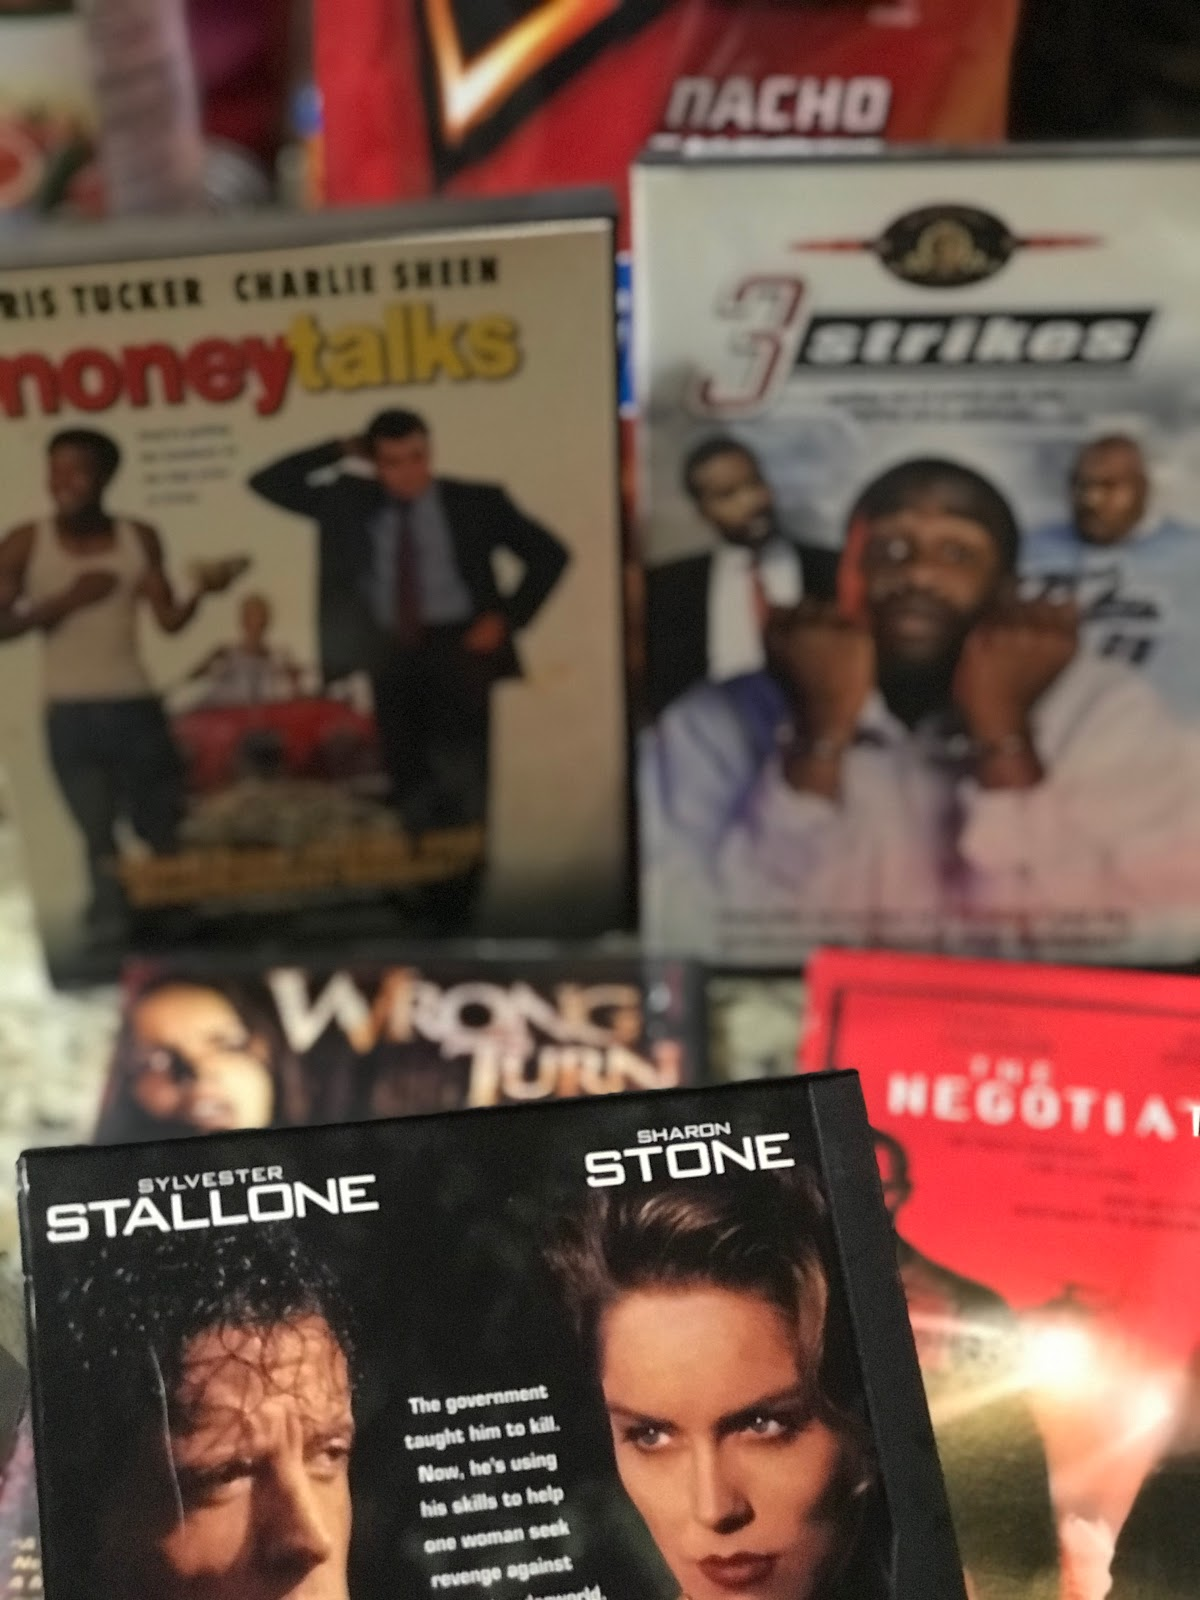 To Relax on this day, I have pulled out two funny movies.    Three Strikes and Money Talks    One Wrong Turn for the scary side of me on tonight    If I make it past 12 am, I will start on The Negotiator and The Specialist with Sylvester Stallone. Midweek Recap 1